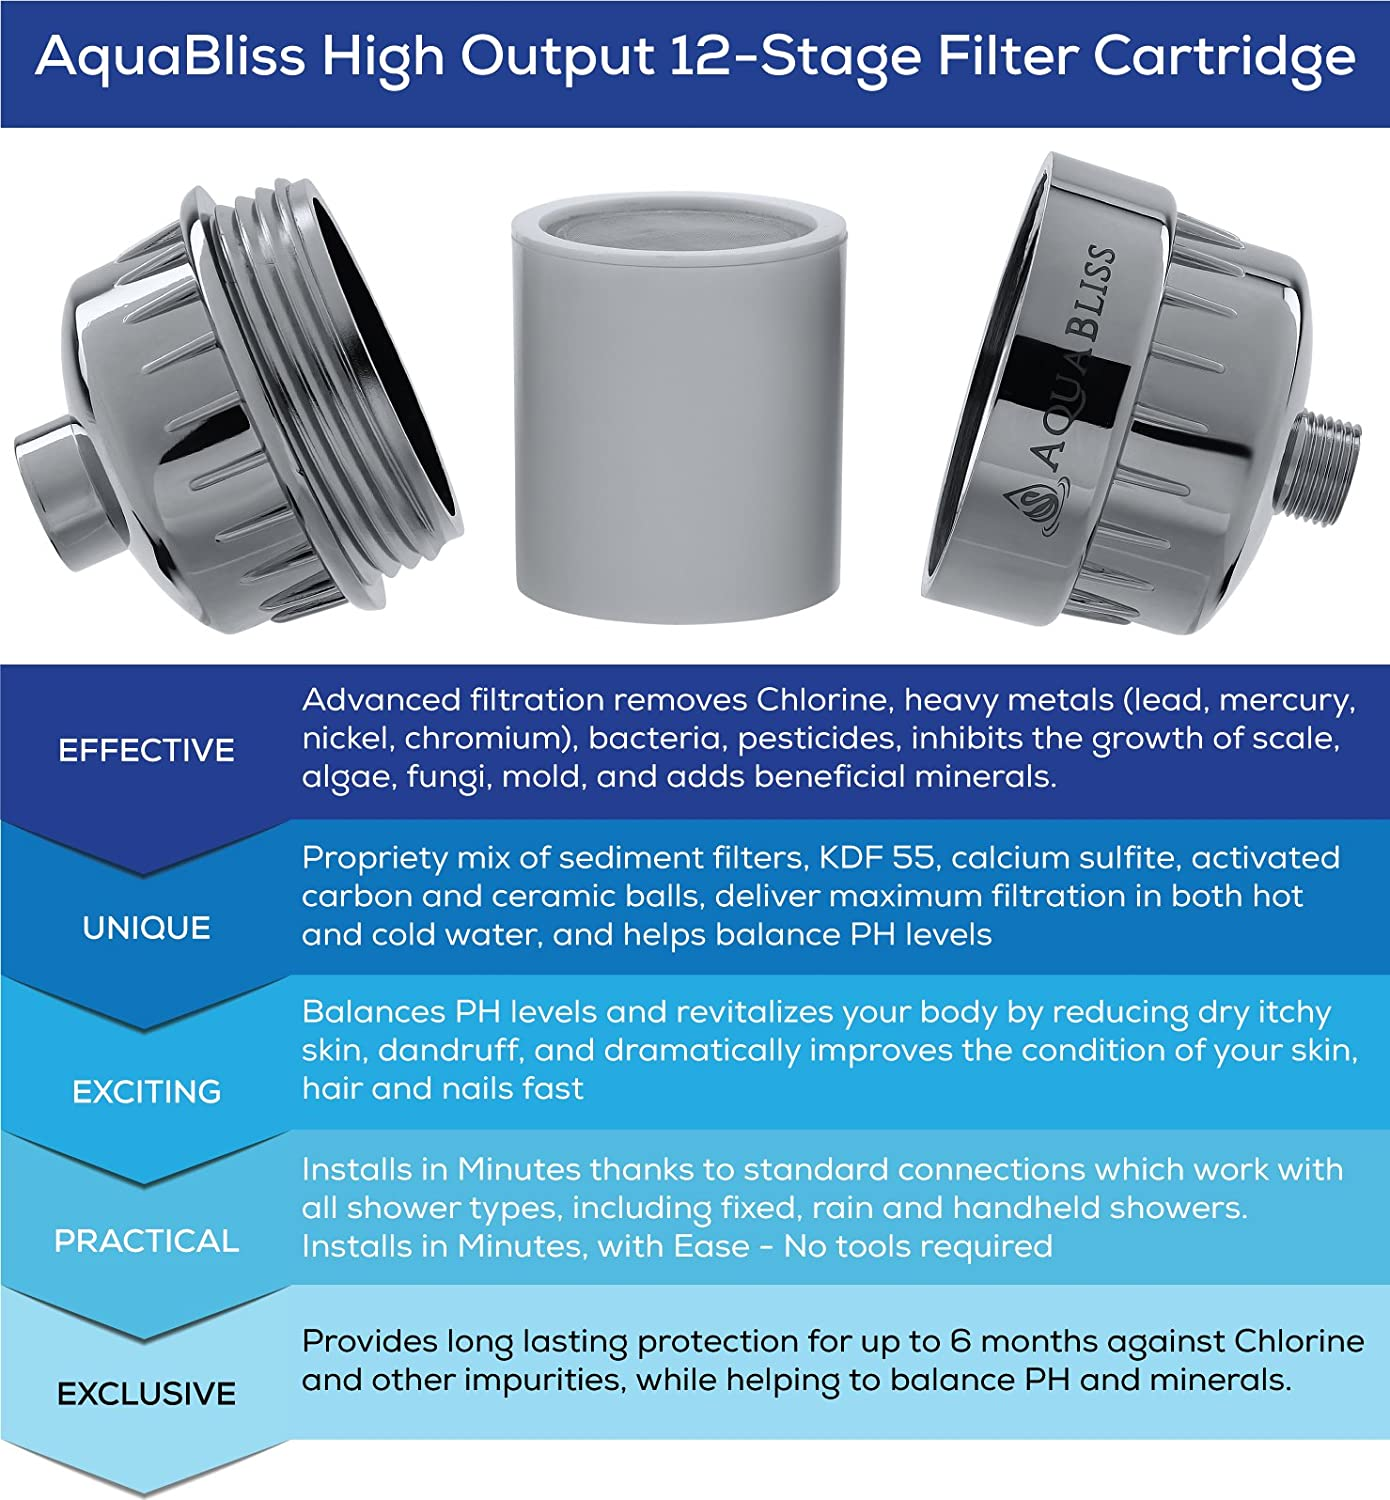 AquaBliss Replacement 12-Stage Filter Cartridge, for use with High ...